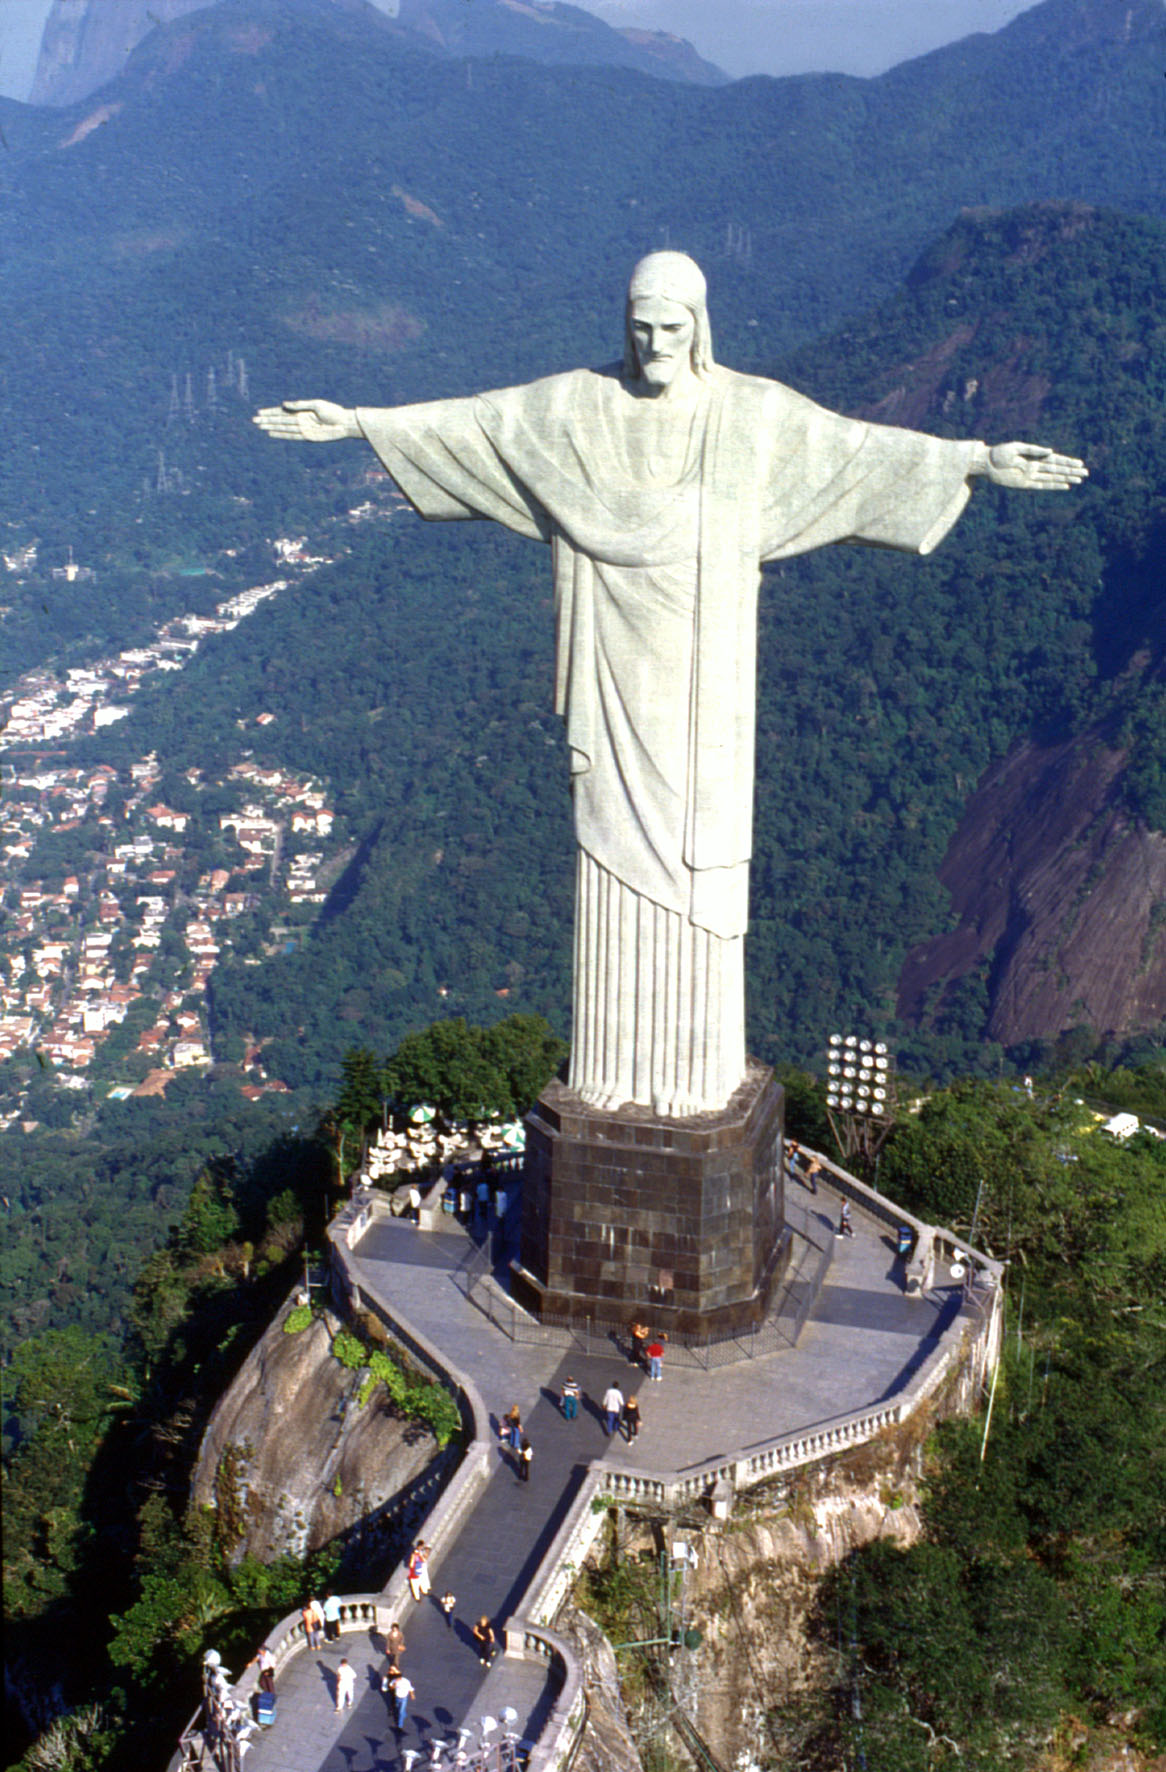 Christ the Redeemer lge21 - 7 w0ndErs 0v dA woRld